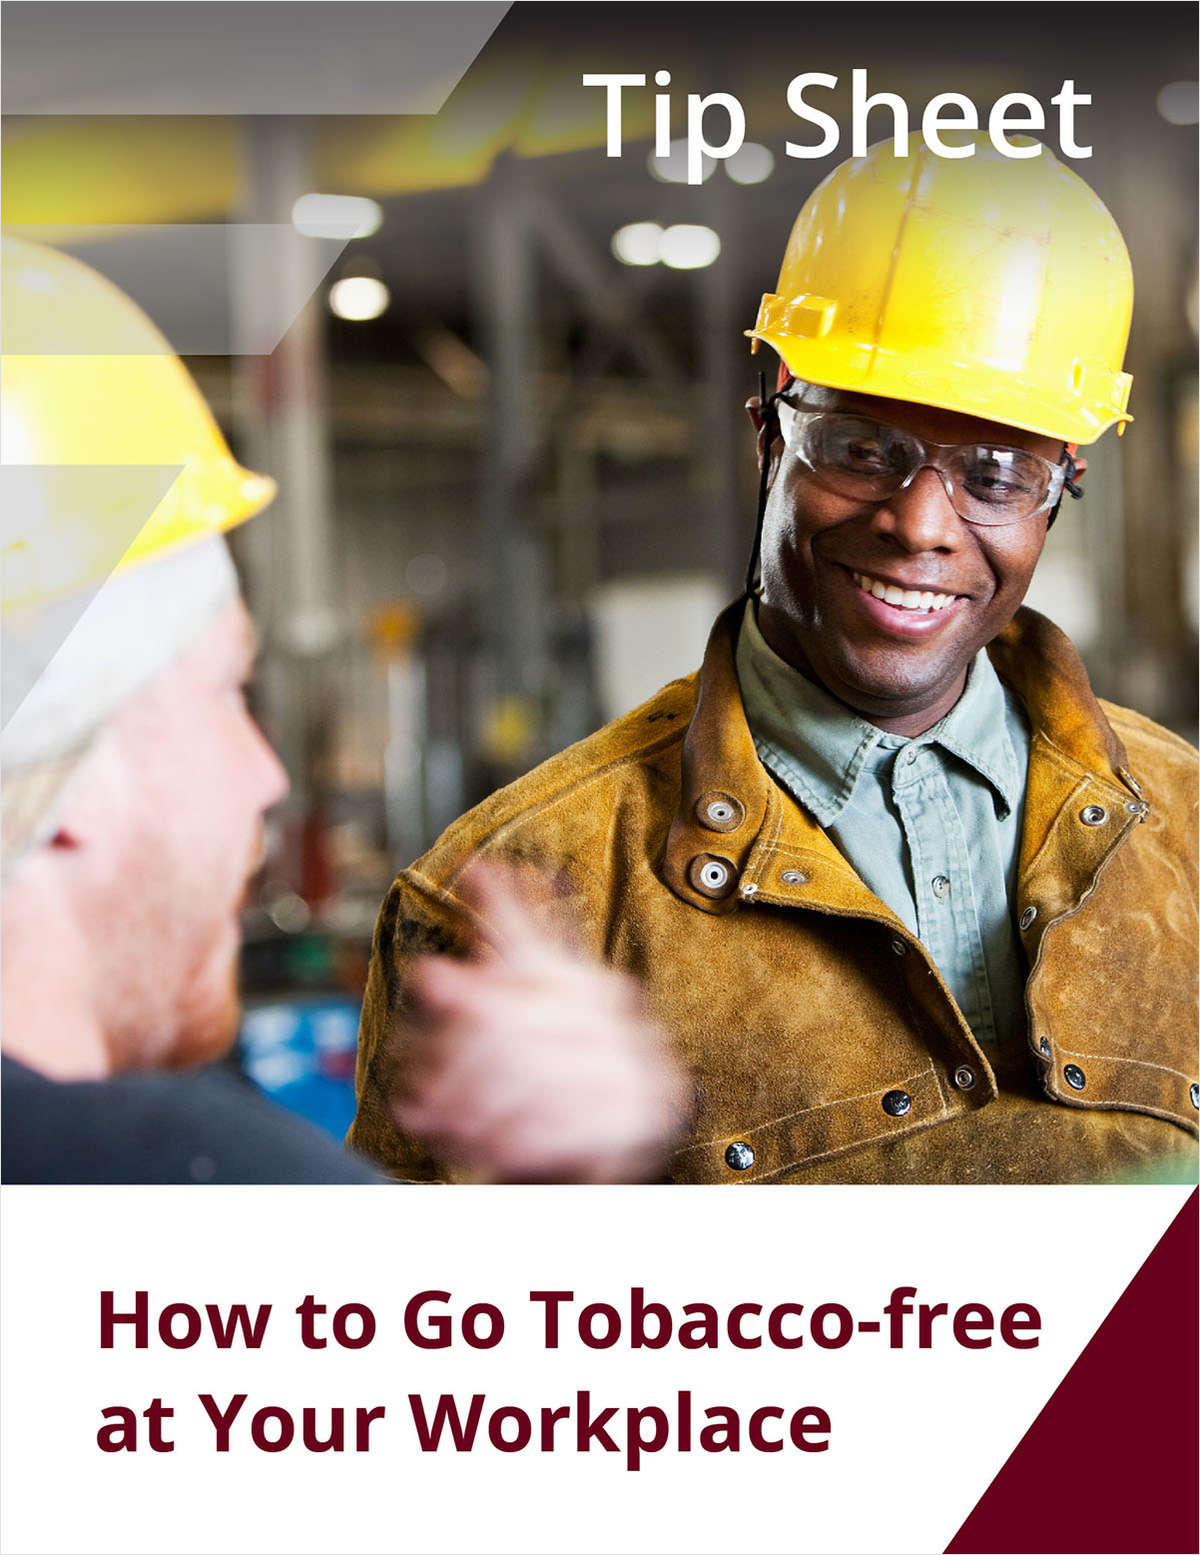 How to Go Tobacco-Free at Your Workplace